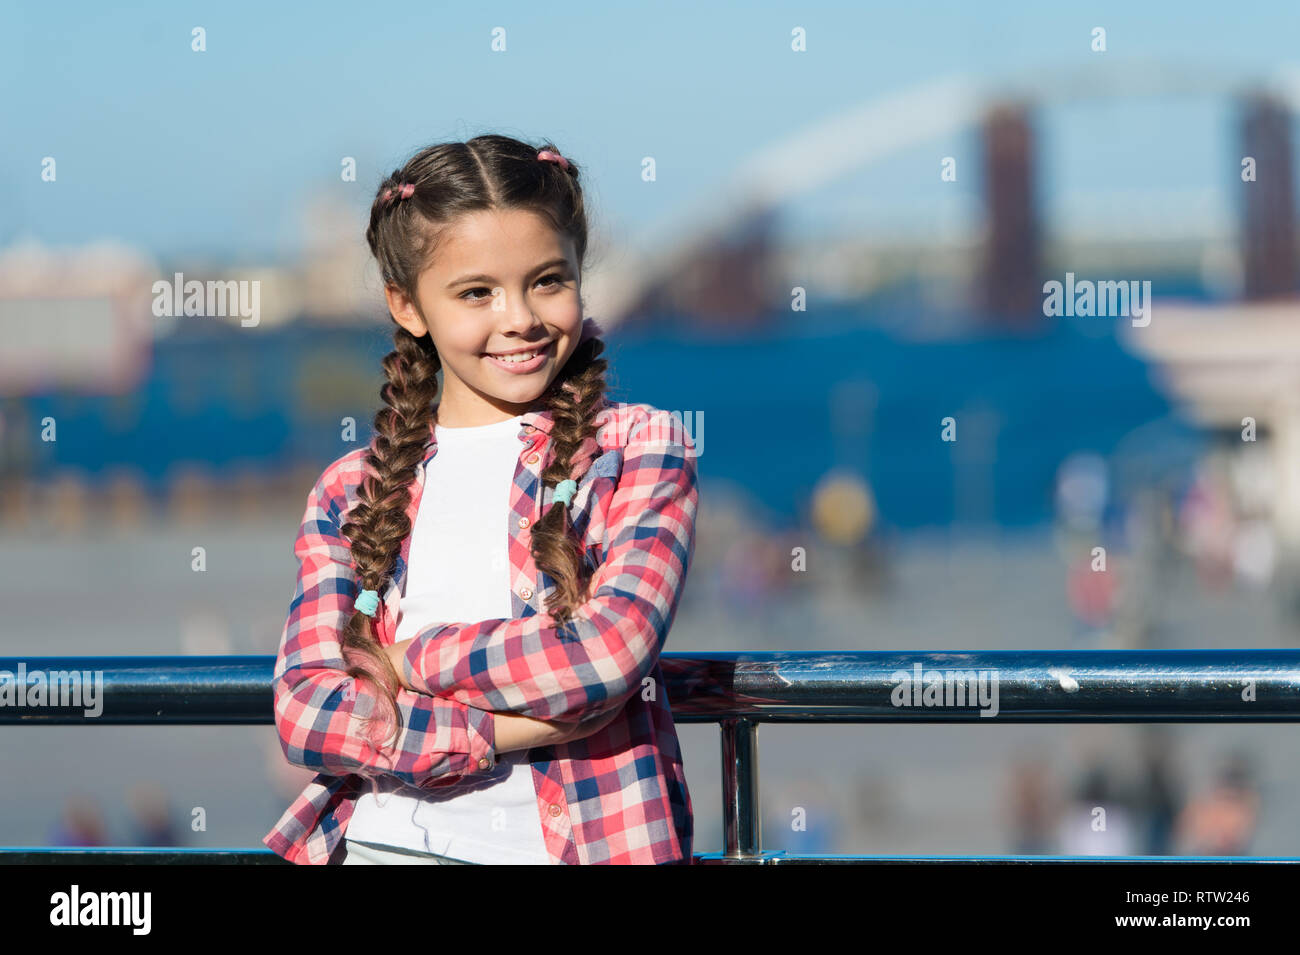 Vacation and leisure. What do on holidays. Sunny day walk. Leisure options. Free time and leisure. Girl cute kid with braids relaxing urban background defocused. Organize activities for teenagers. - Stock Image